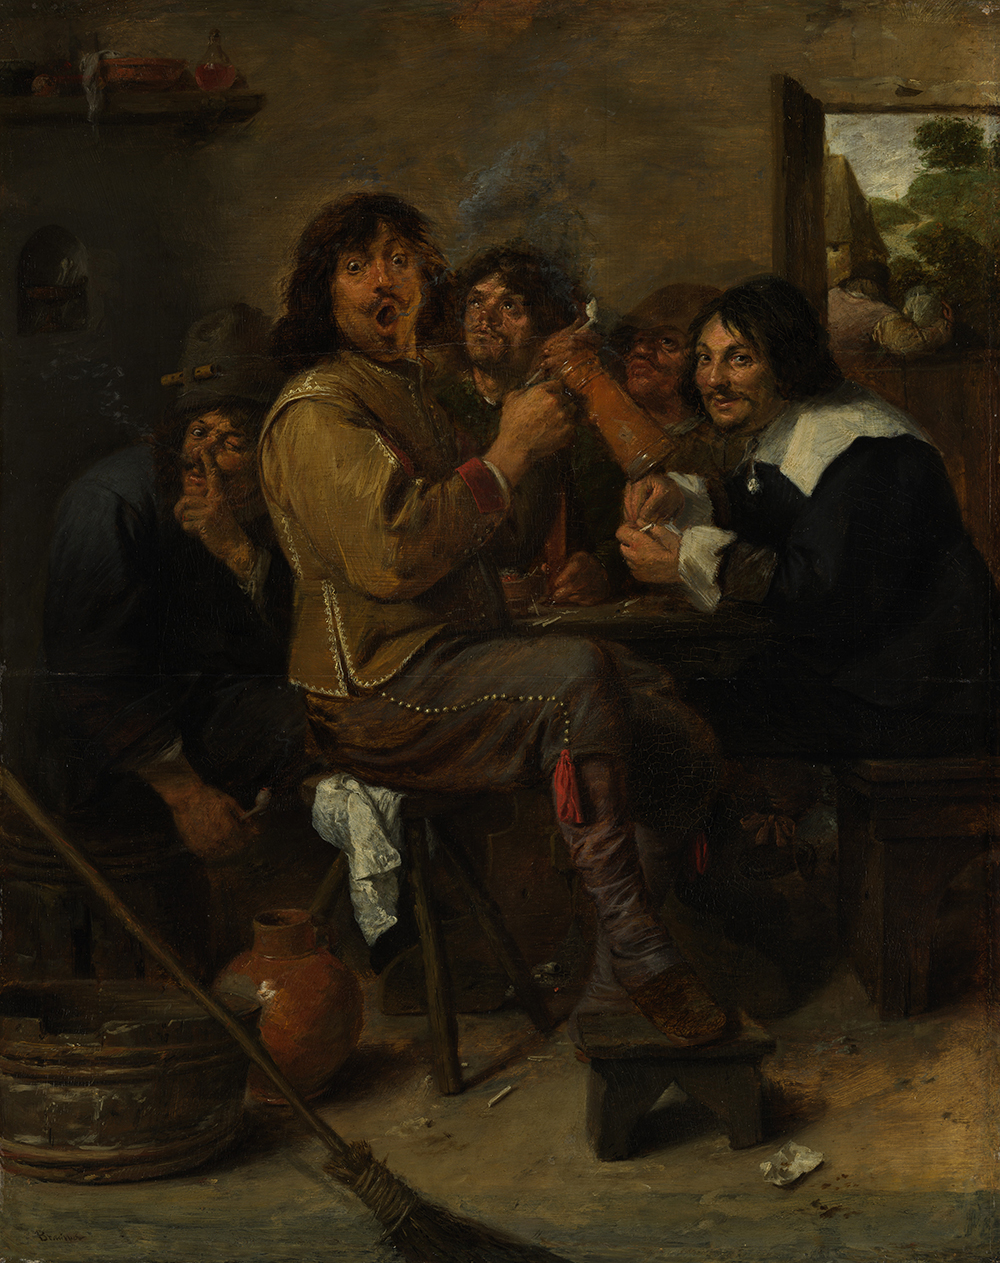 The Smokers, by Adriaen Brouwer, c. 1636.